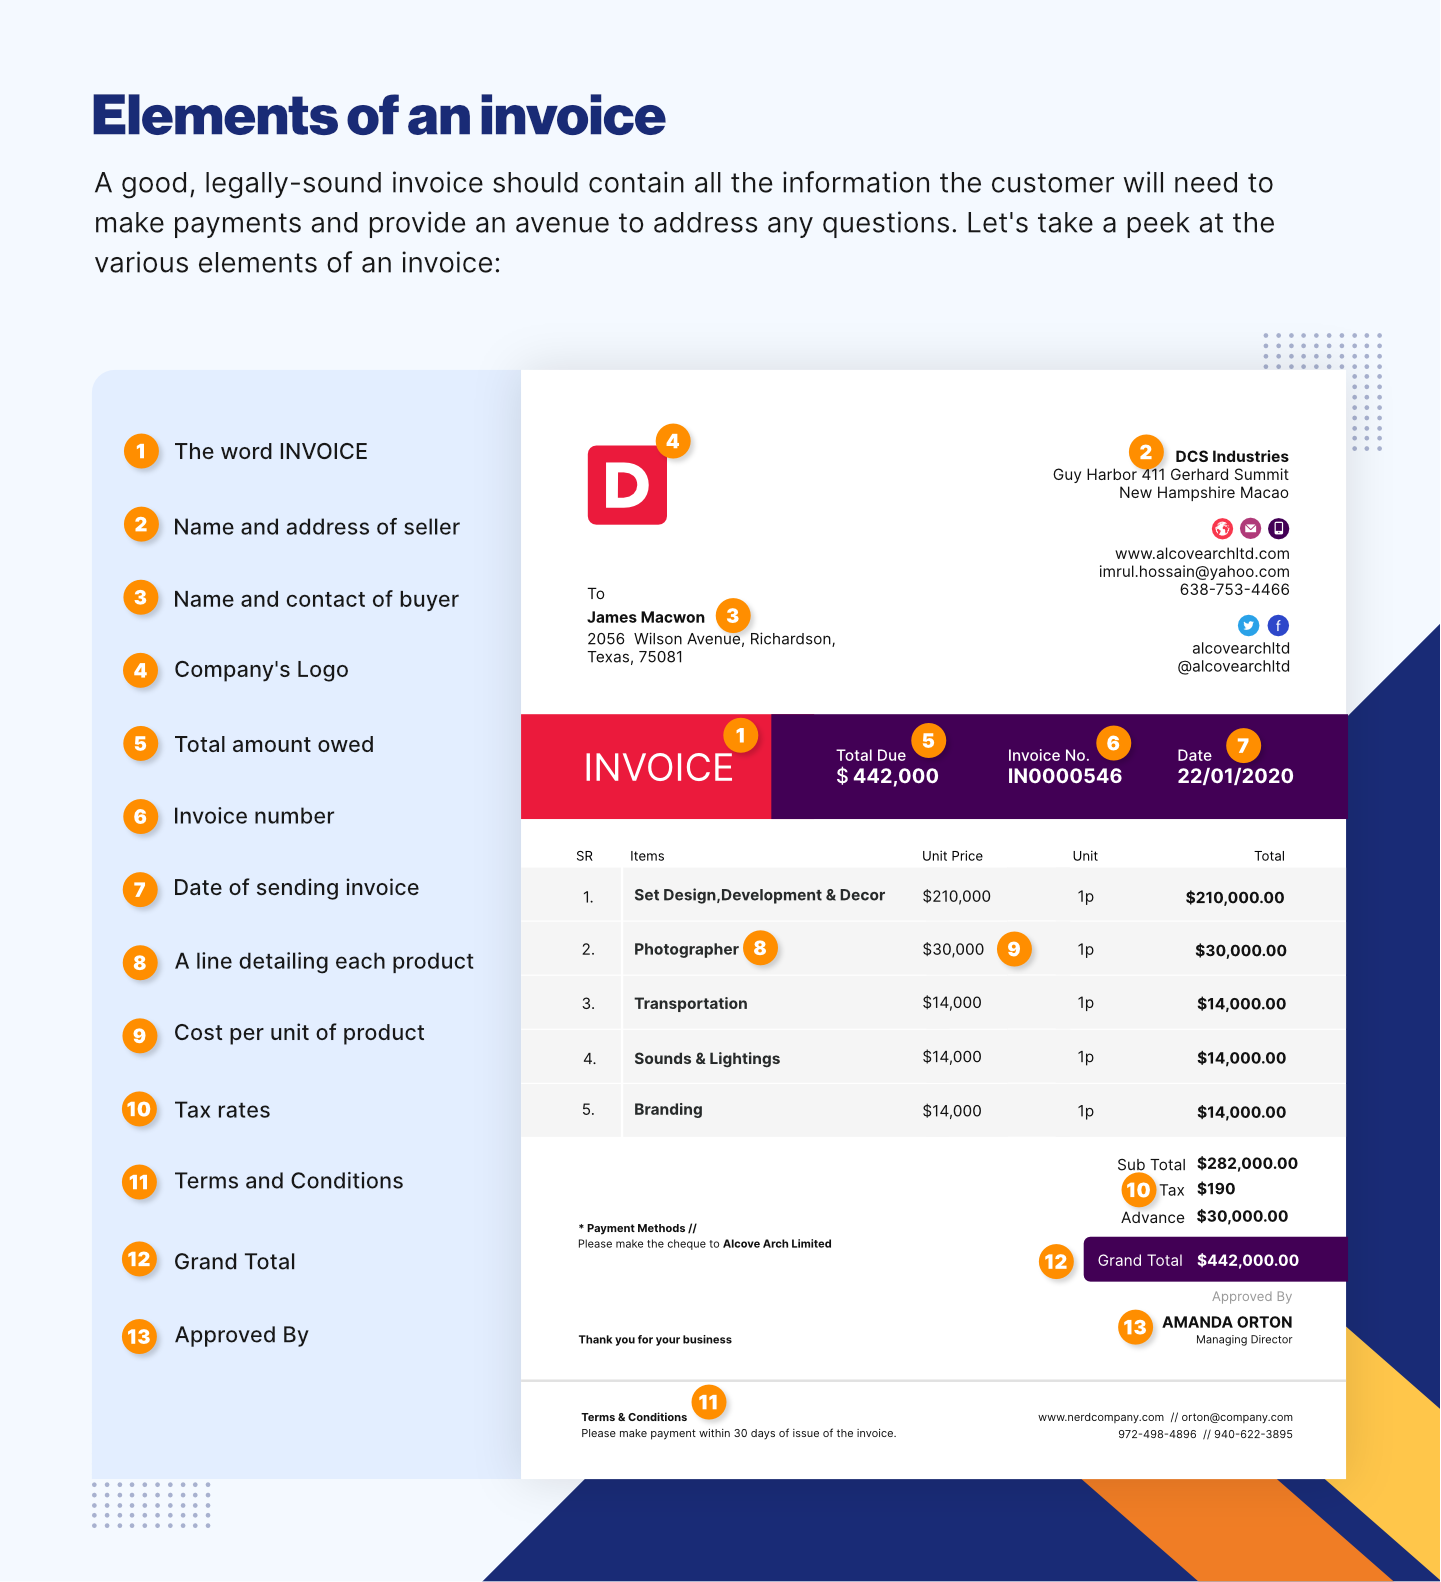 Elements of an Invoice